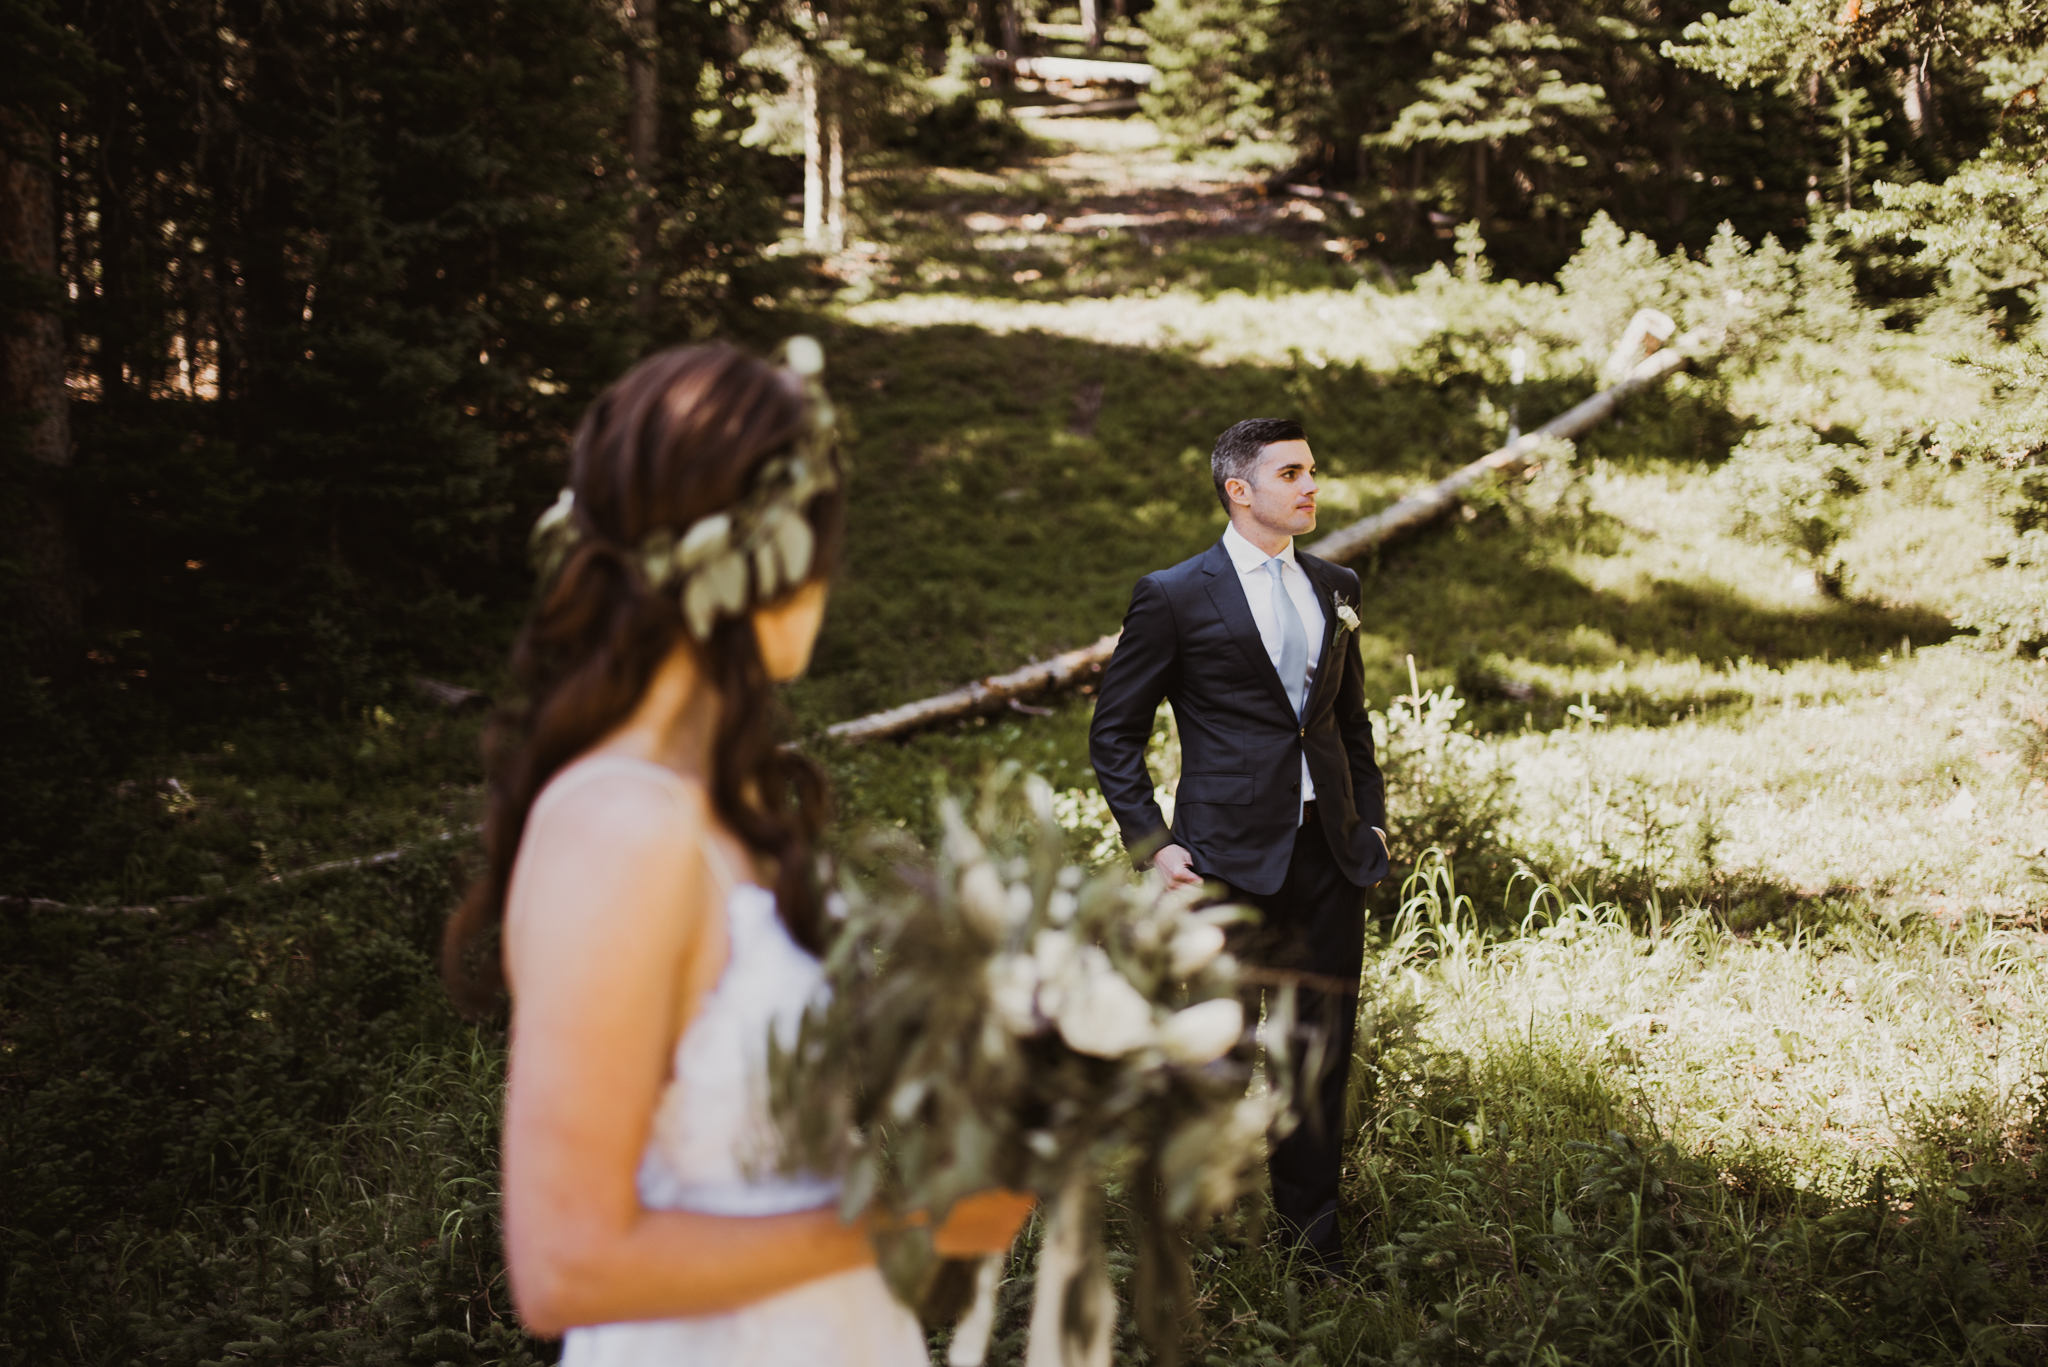 ©Isaiah + Taylor Photography - Estes National Park Adventure Elopement, Colorado Rockies-64.jpg